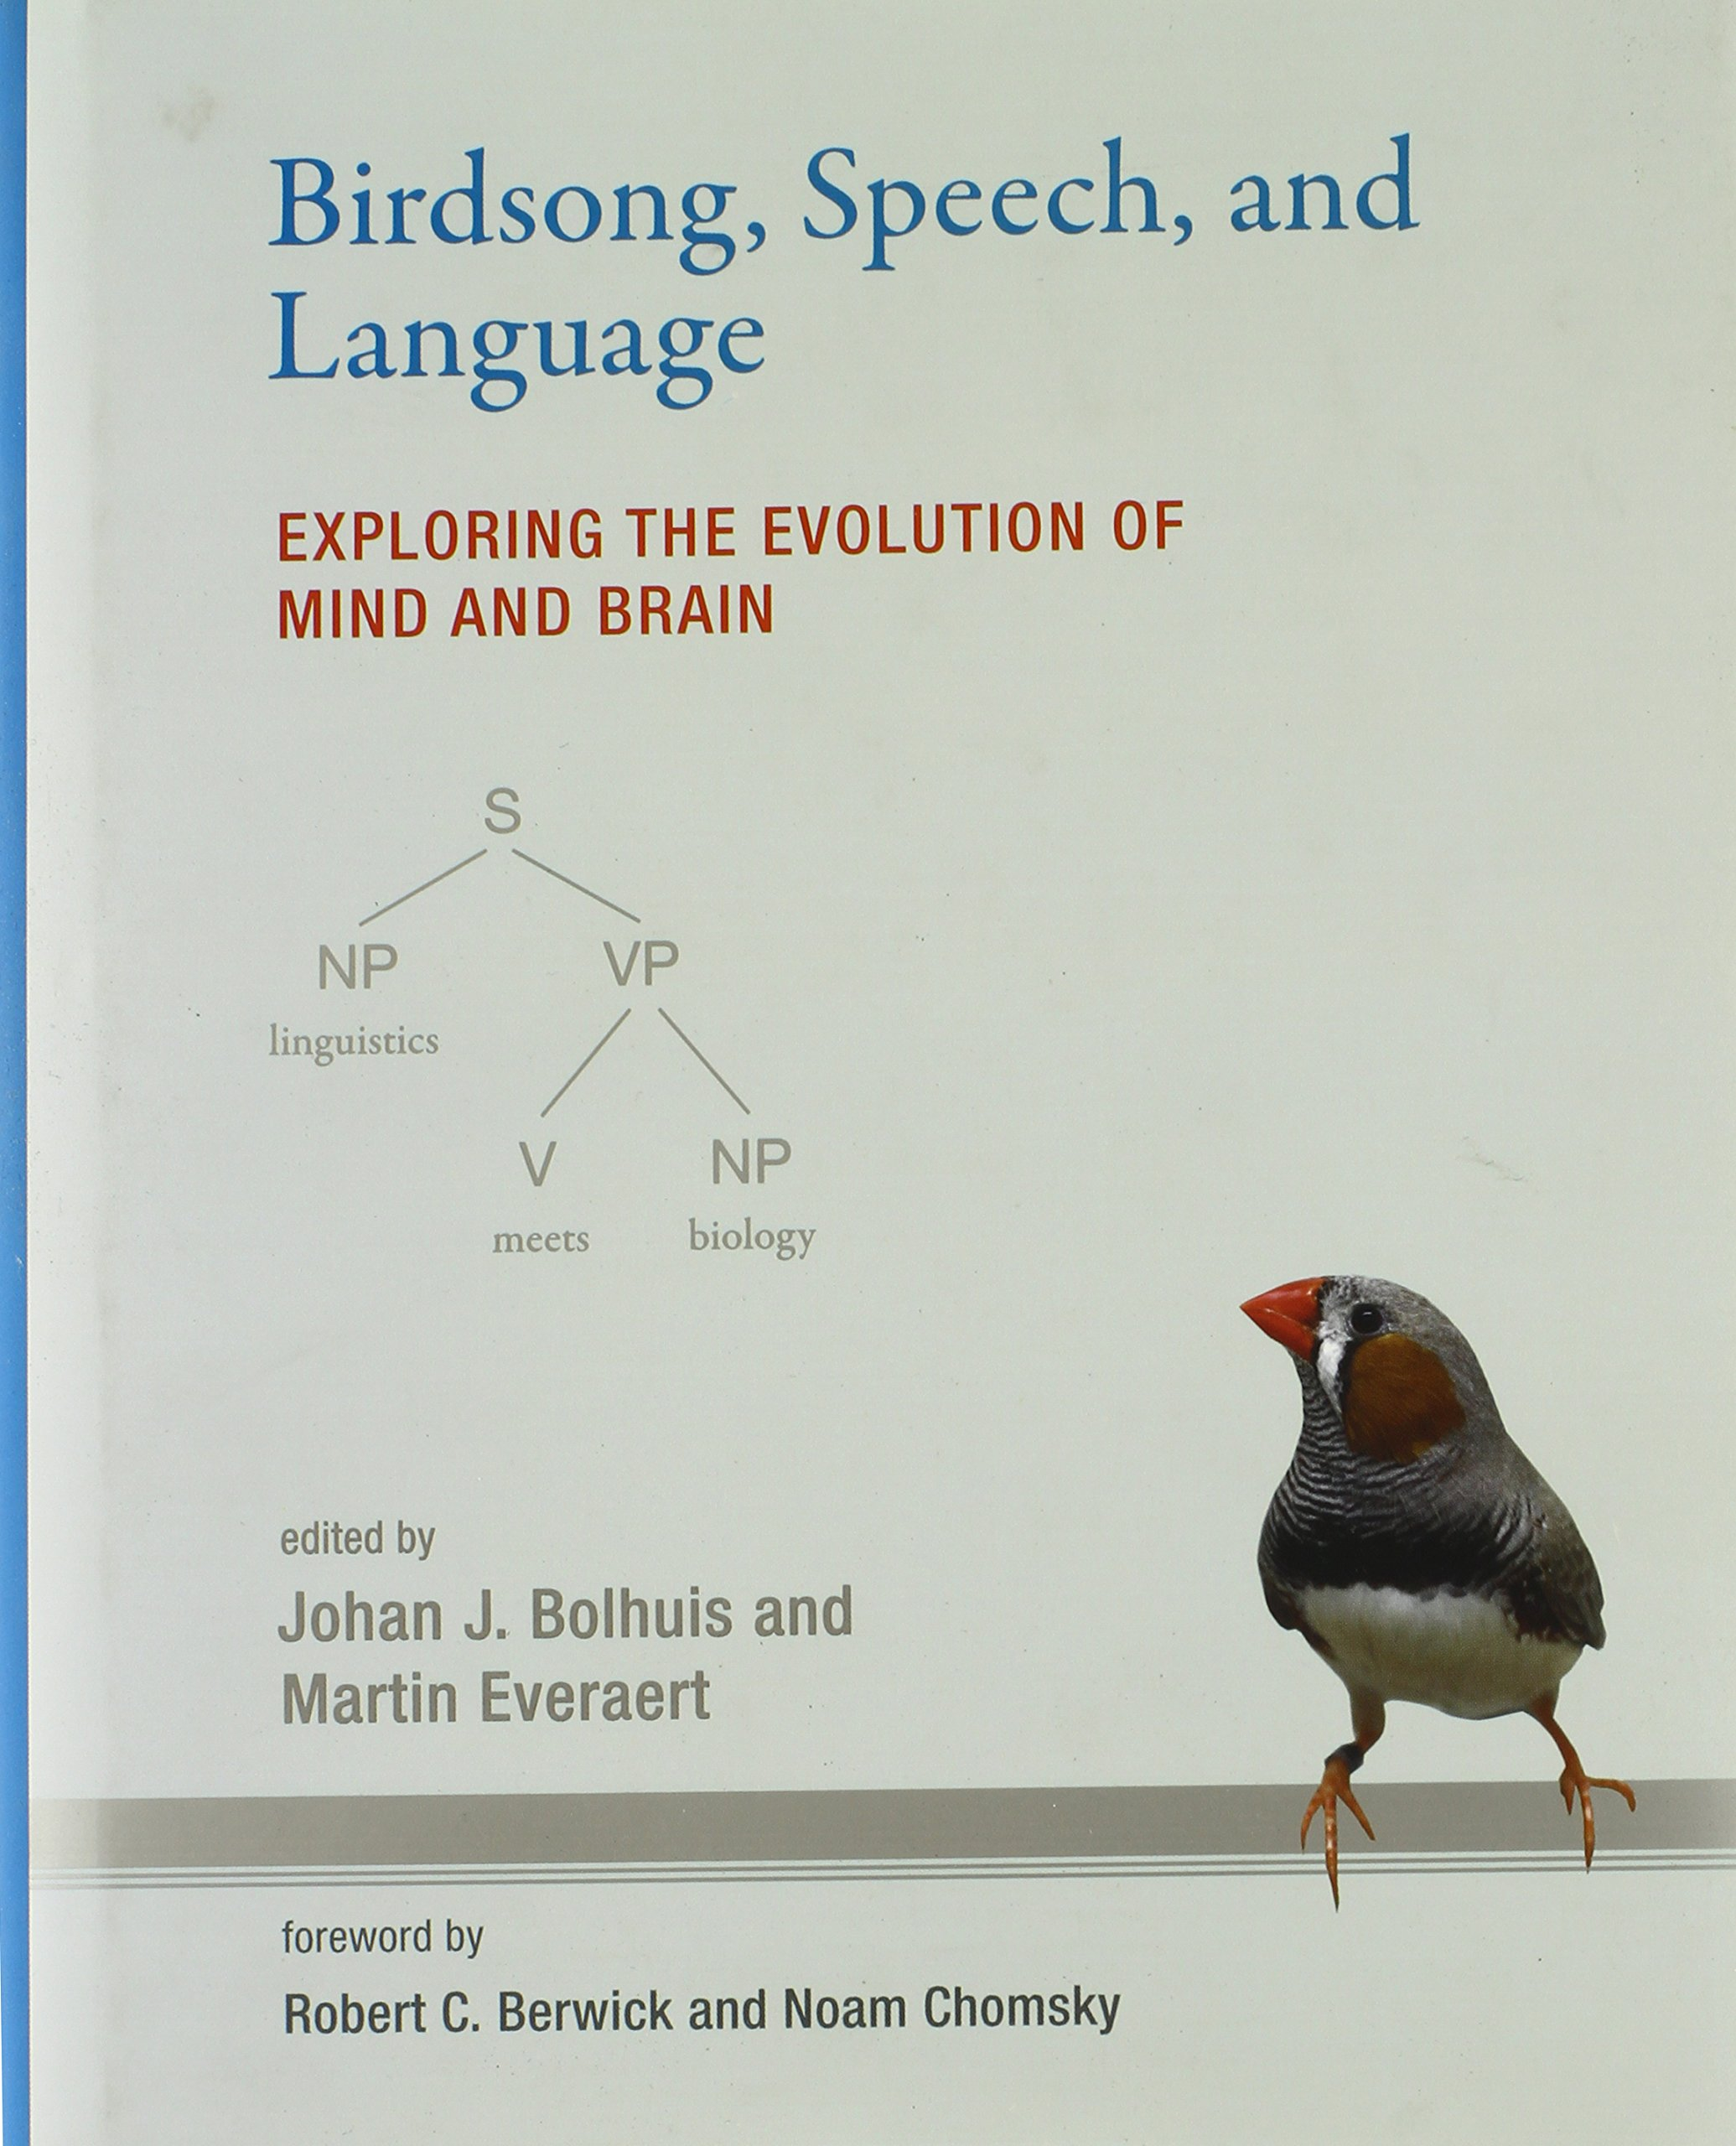 Birdsong, Speech, and Language: Exploring the Evolution of Mind and Brain (The MIT Press) by The MIT Press